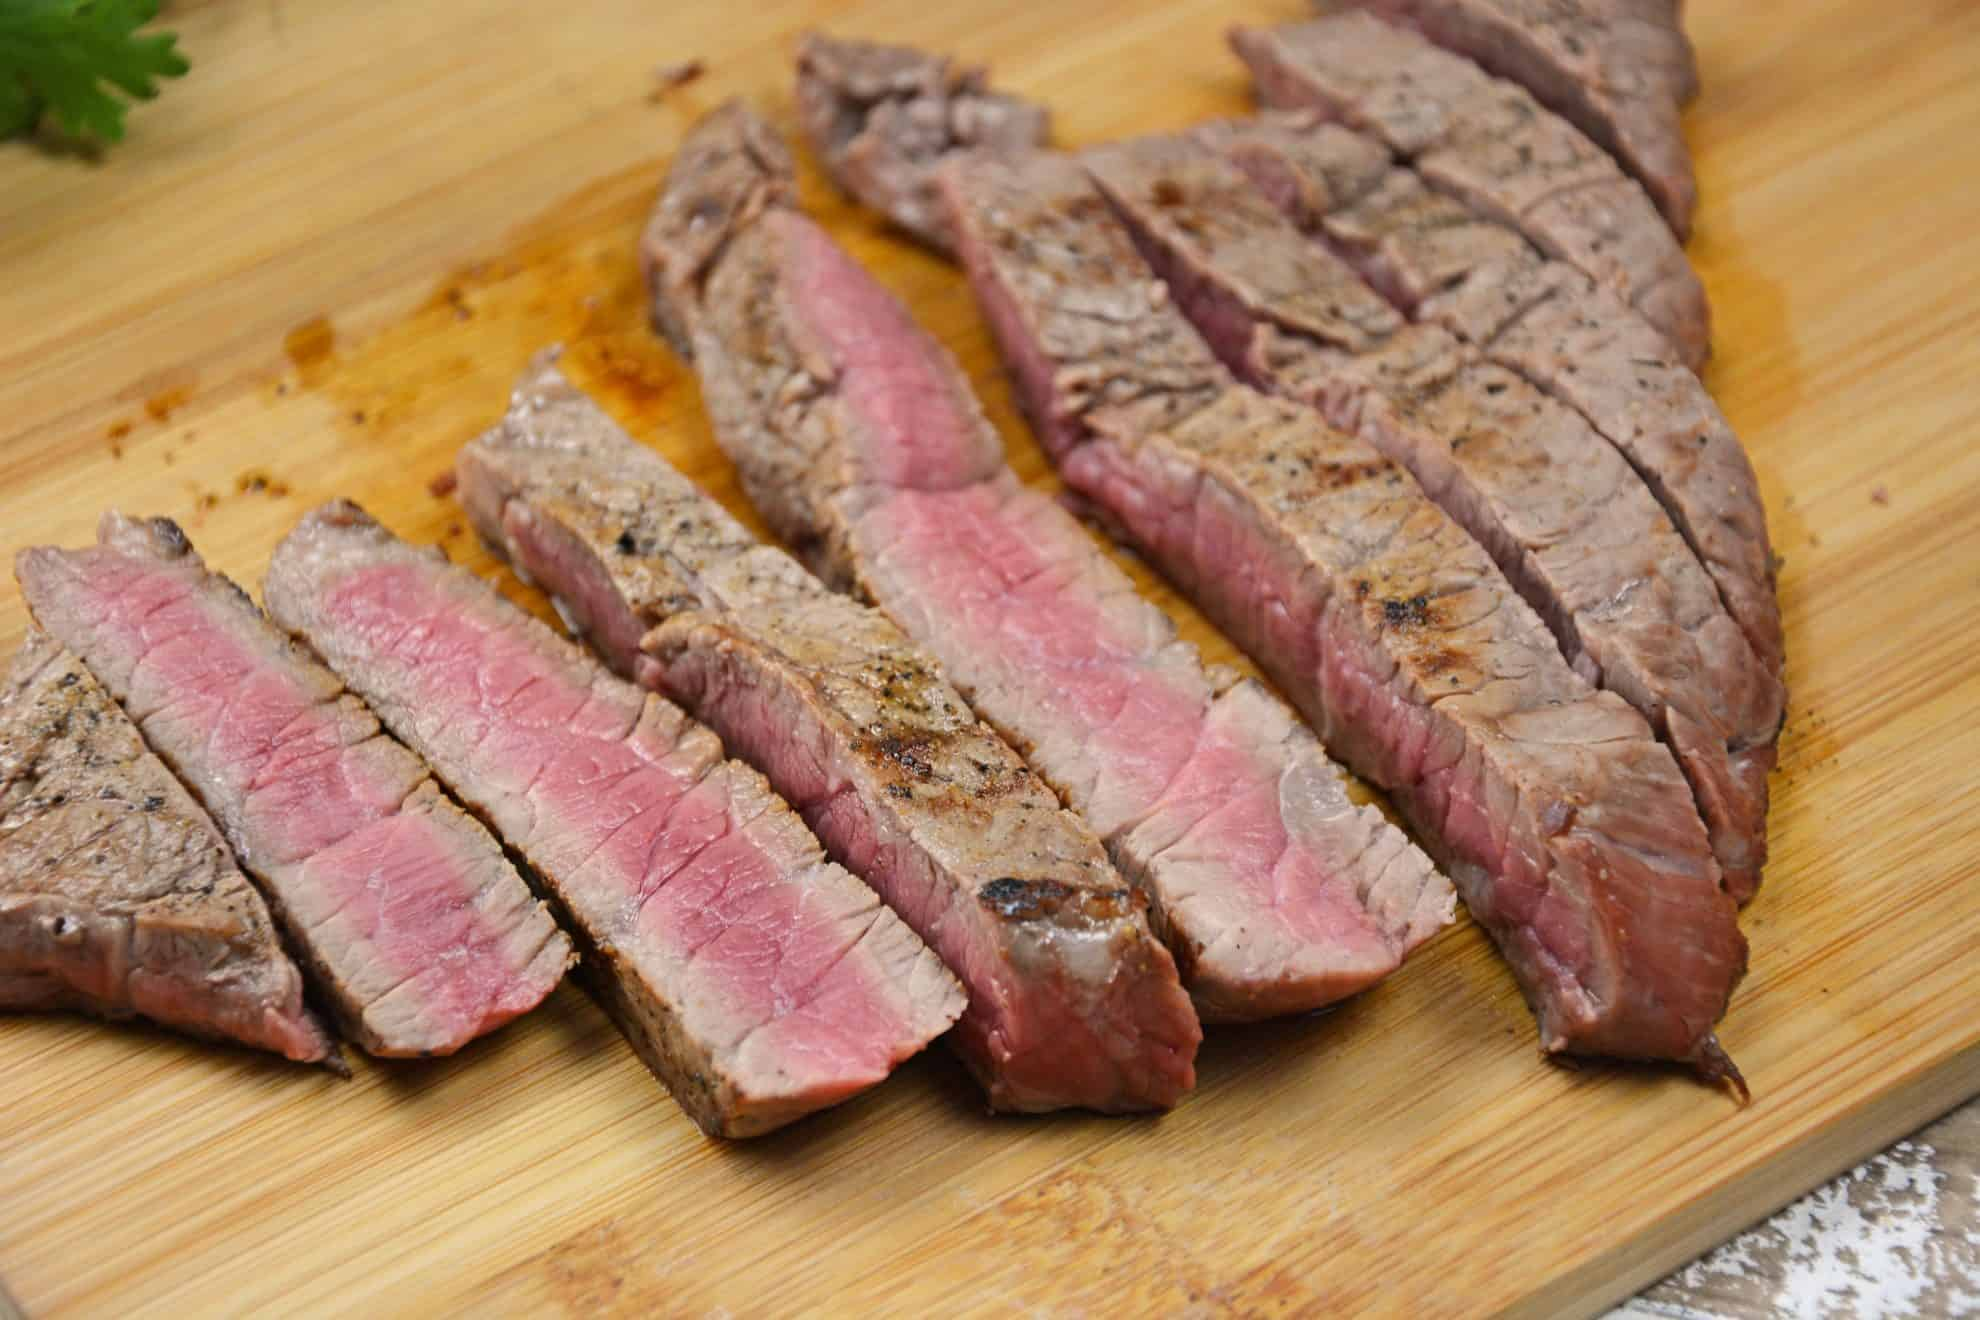 Sliced steak on a cutting board